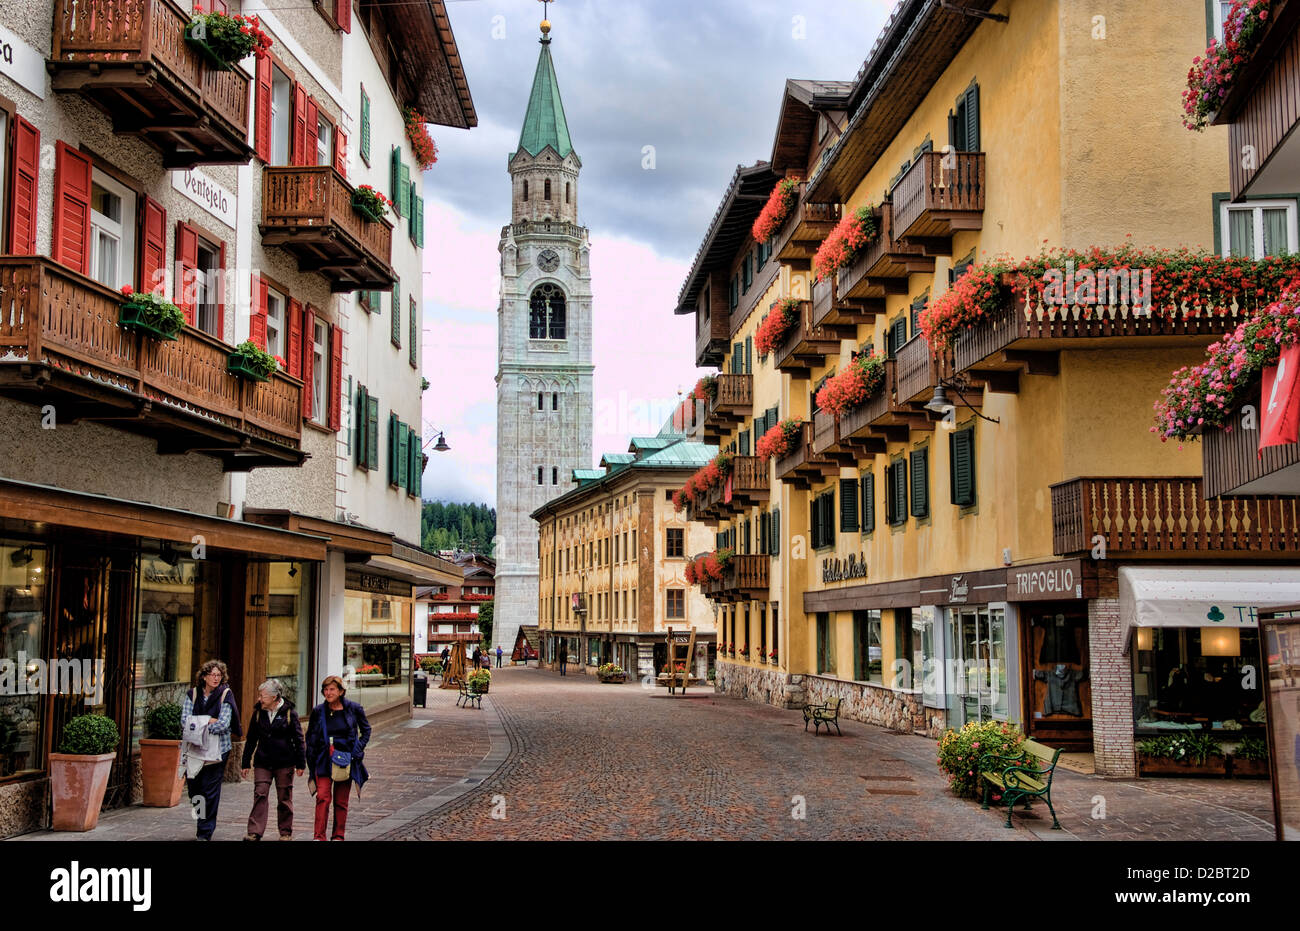 Architecture And Buildings Of Cortina D' Aamezzo In Italian Alps Dolomites Mountains In Town Center. Italy - Stock Image